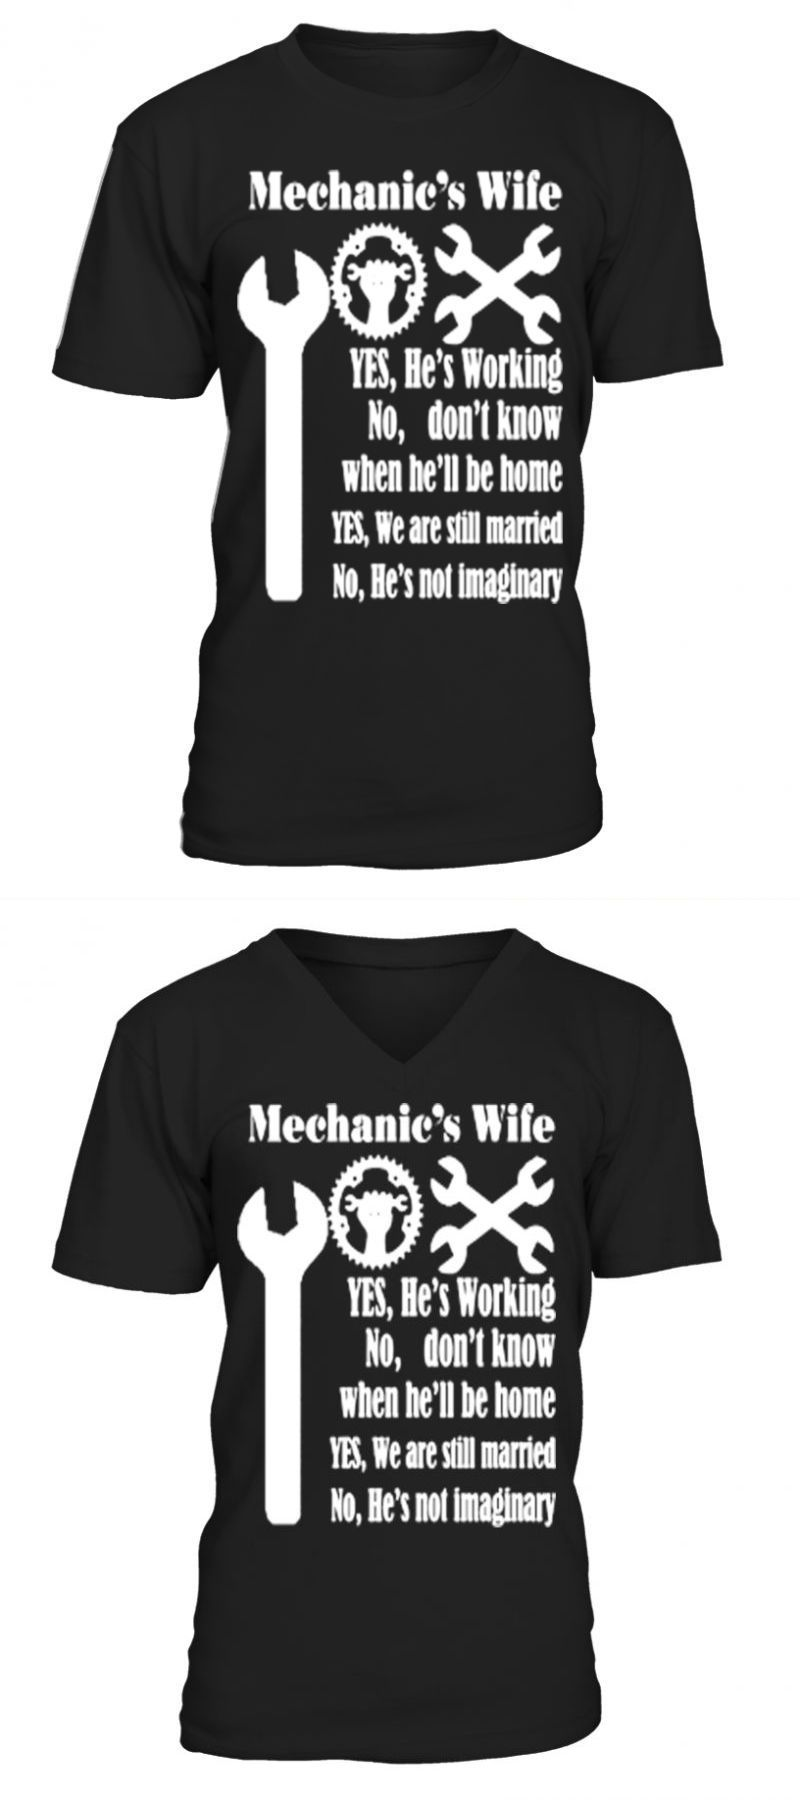 edc93affc Engineer t shirts funny mechanic engineer t shirt funny #engineer #shirts # funny #mechanic #shirt #definition #of #an #round #neck #t-shirt #unisex  #v-neck